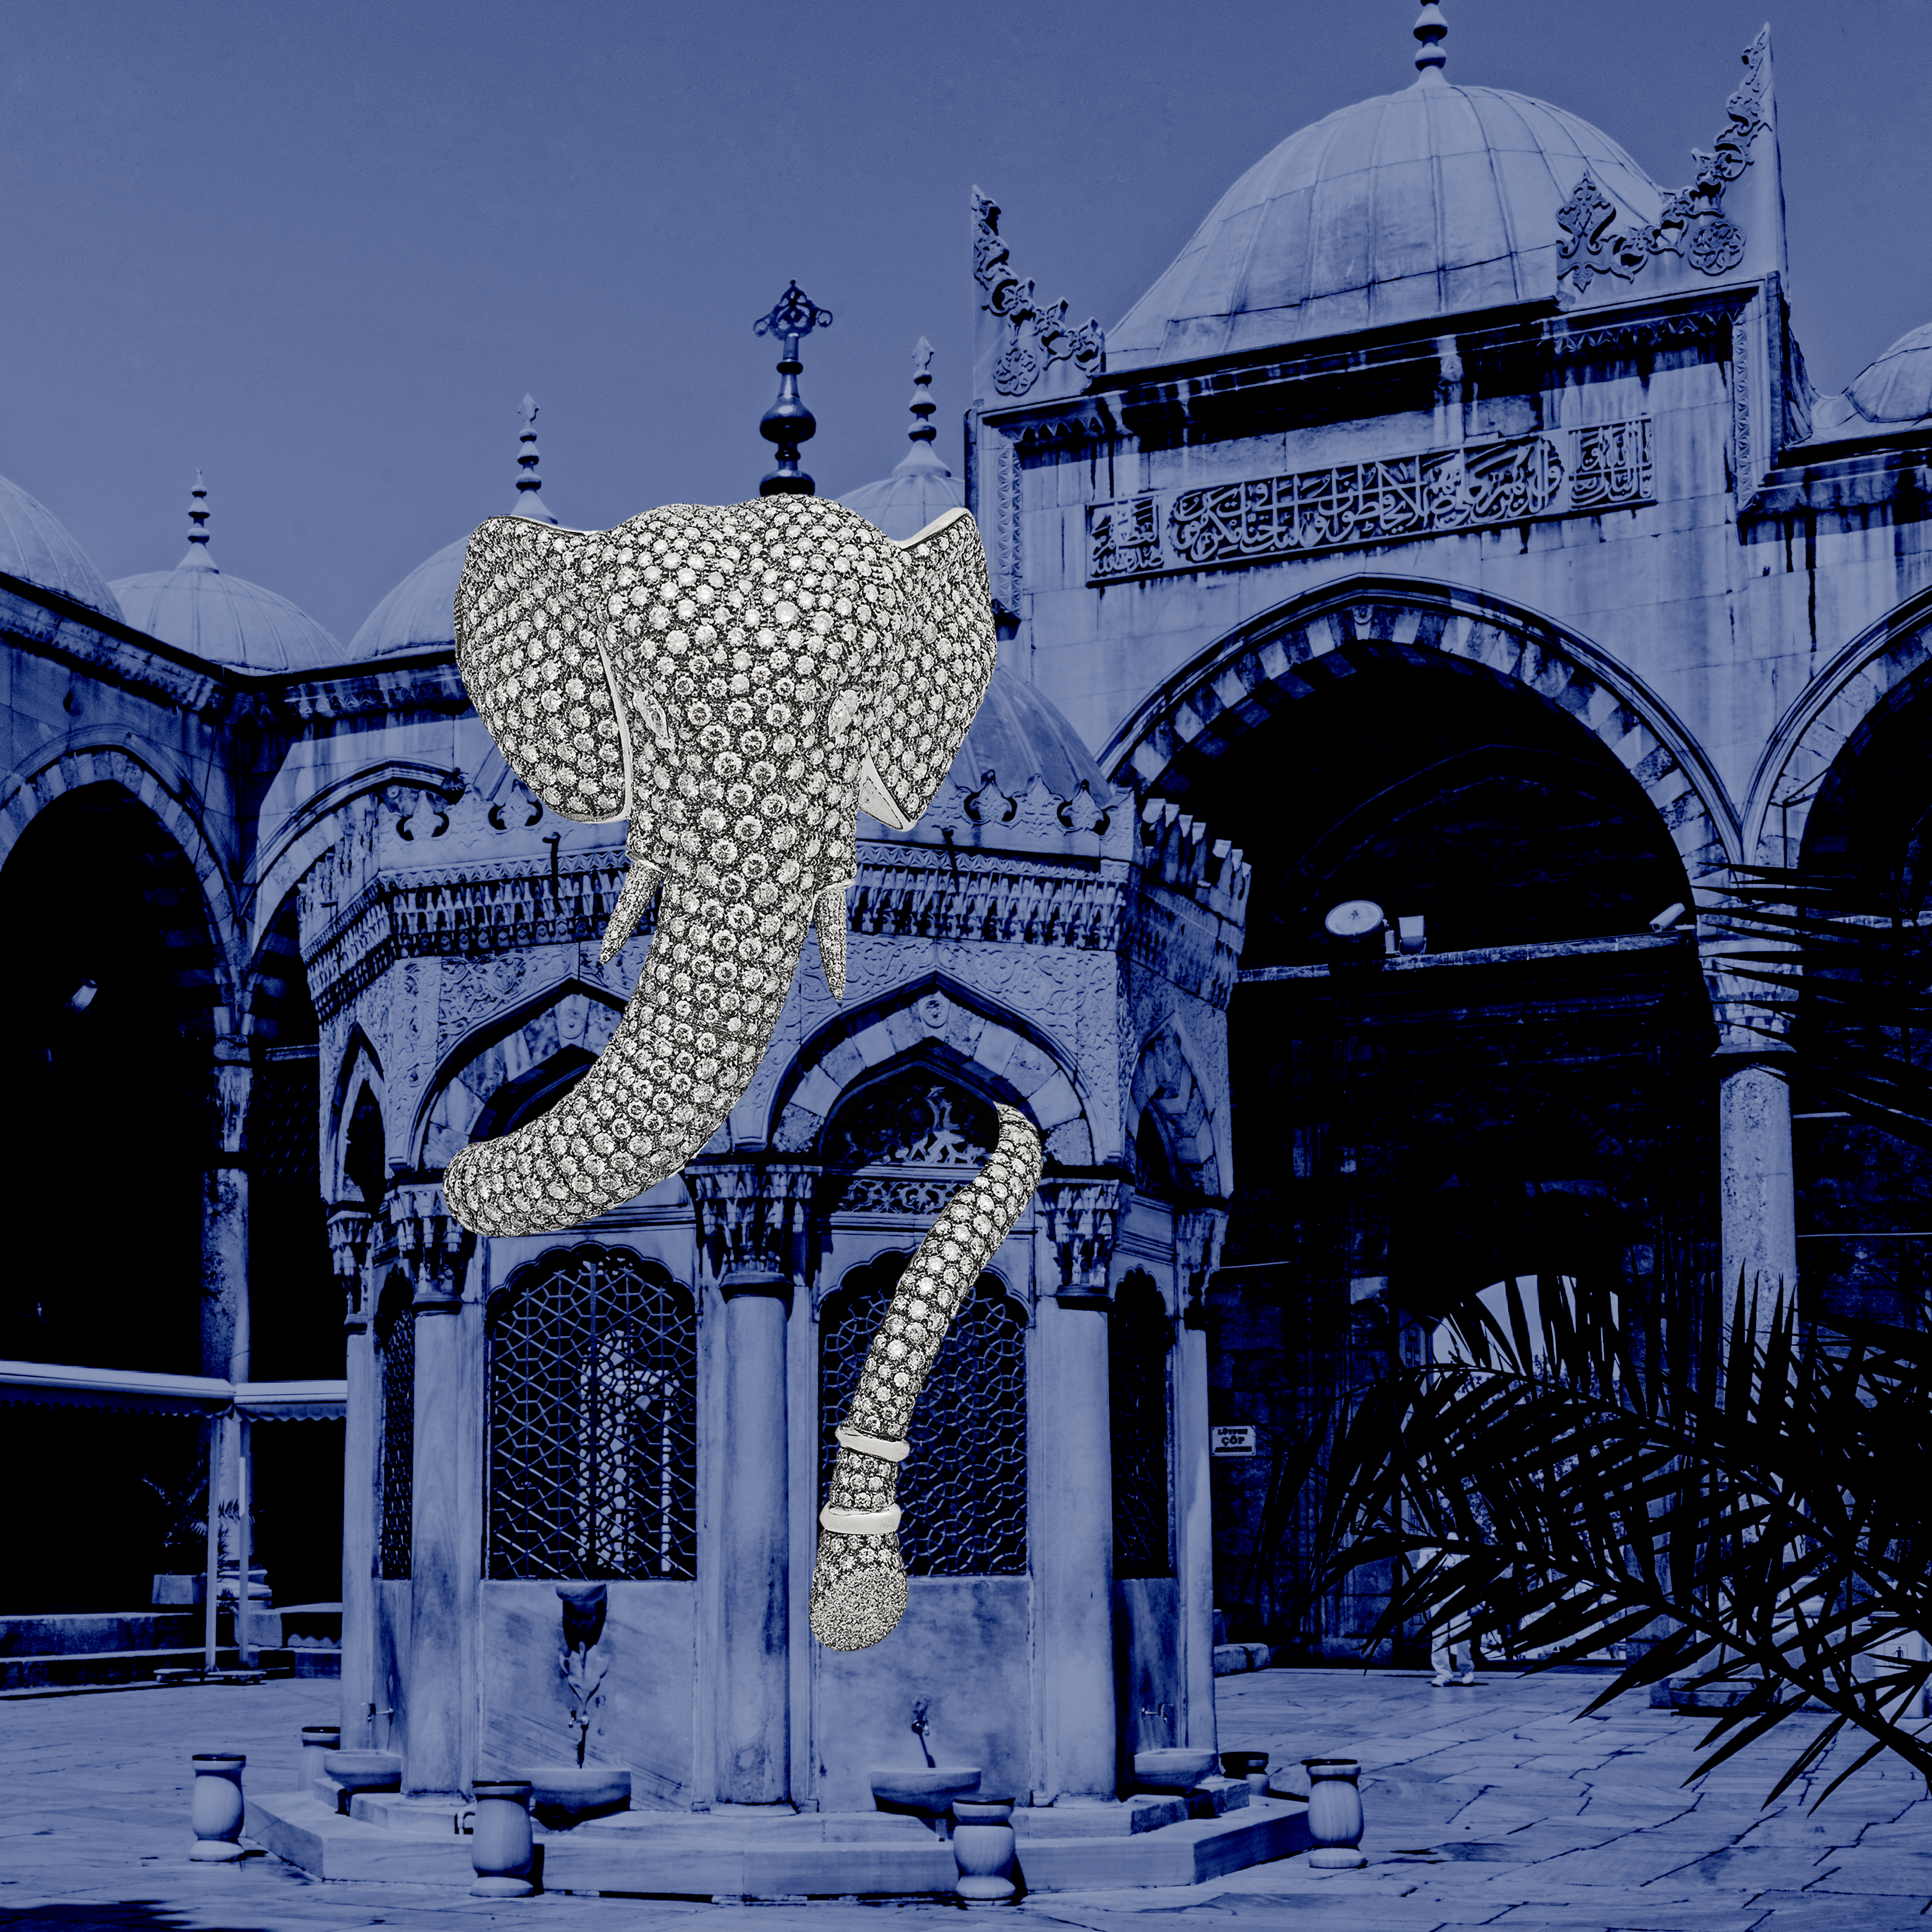 ARCHITECTURAL ELEPHANT